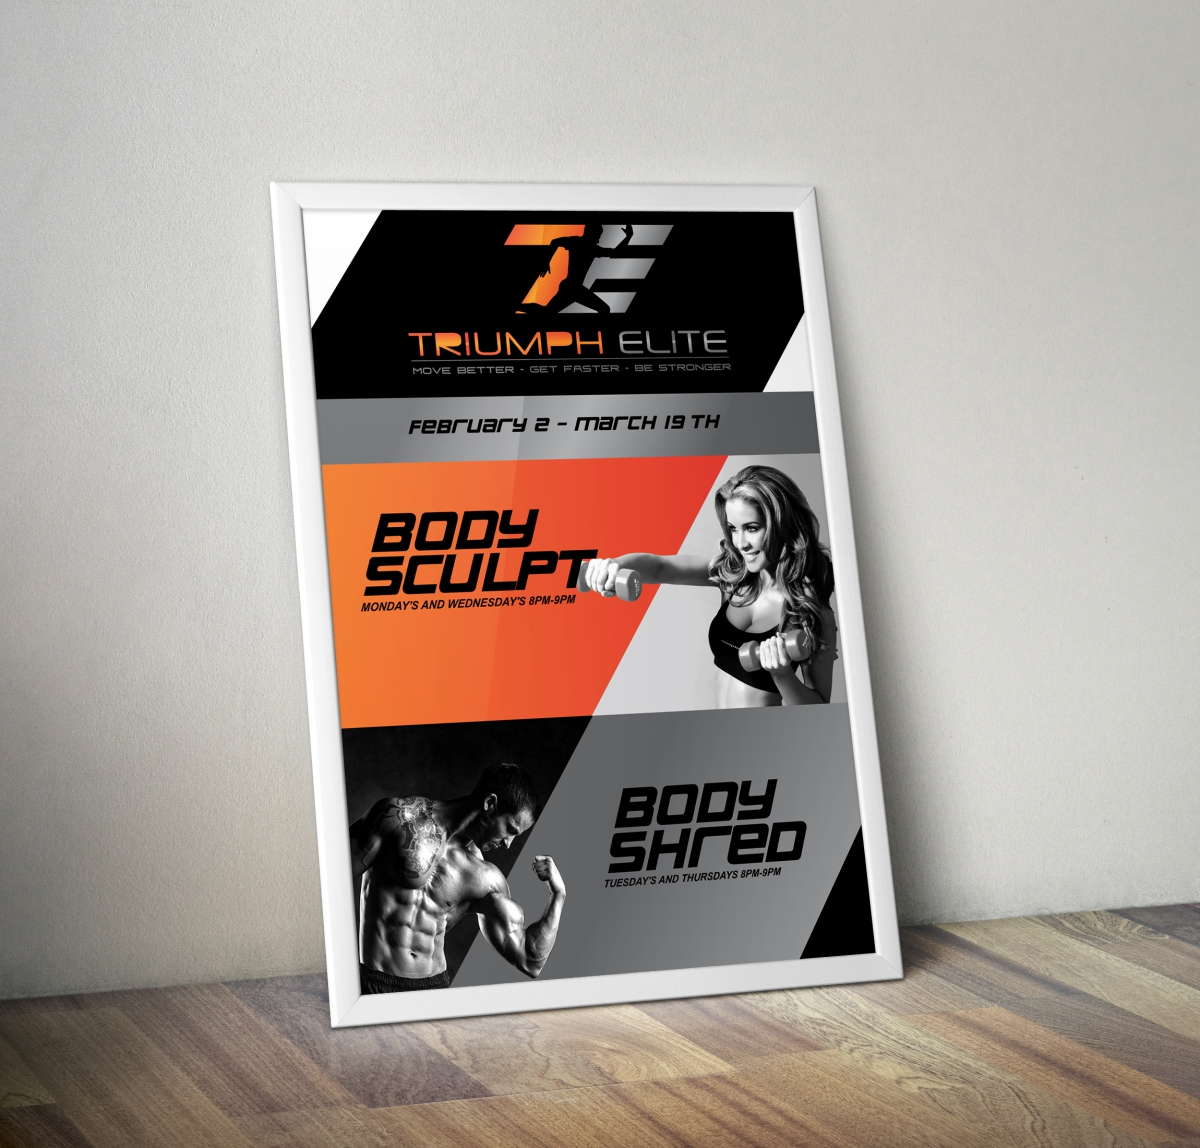 Poster design questionnaire - Poster Design By Cb1318cb1318 For Personal Training Boot Camp Poster Design 5278749